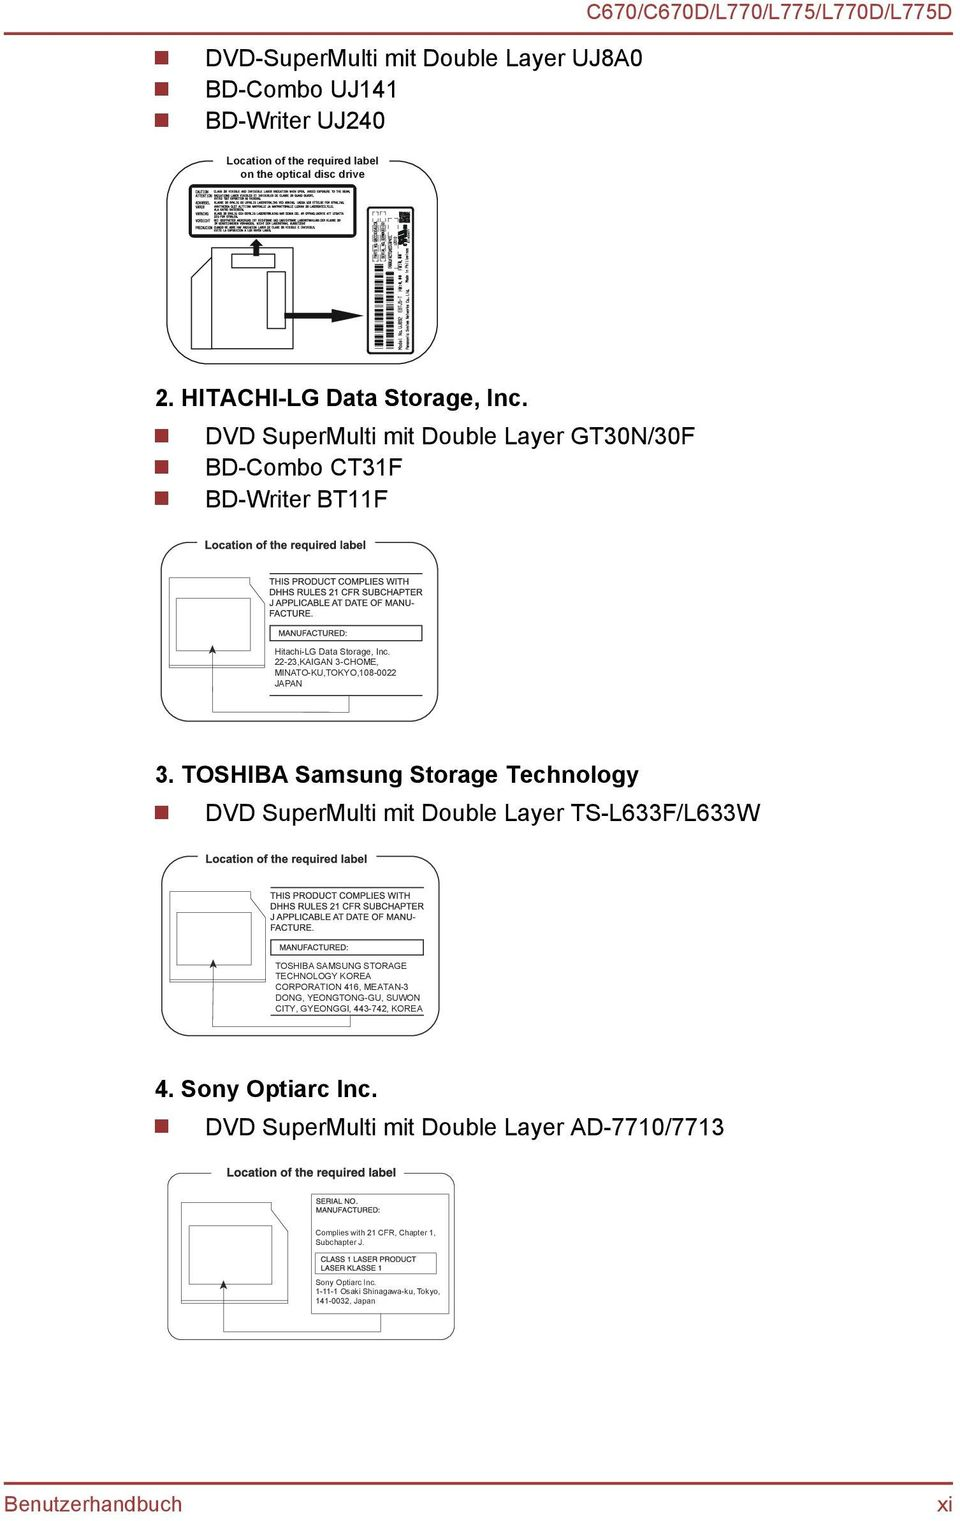 TOSHIBA Samsung Storage Technology DVD SuperMulti mit Double Layer TS-L633F/L633W TOSHIBA SAMSUNG STORAGE TECHNOLOGY KOREA CORPORATION 416, MEATAN-3 DONG, YEONGTONG-GU, SUWON CITY,